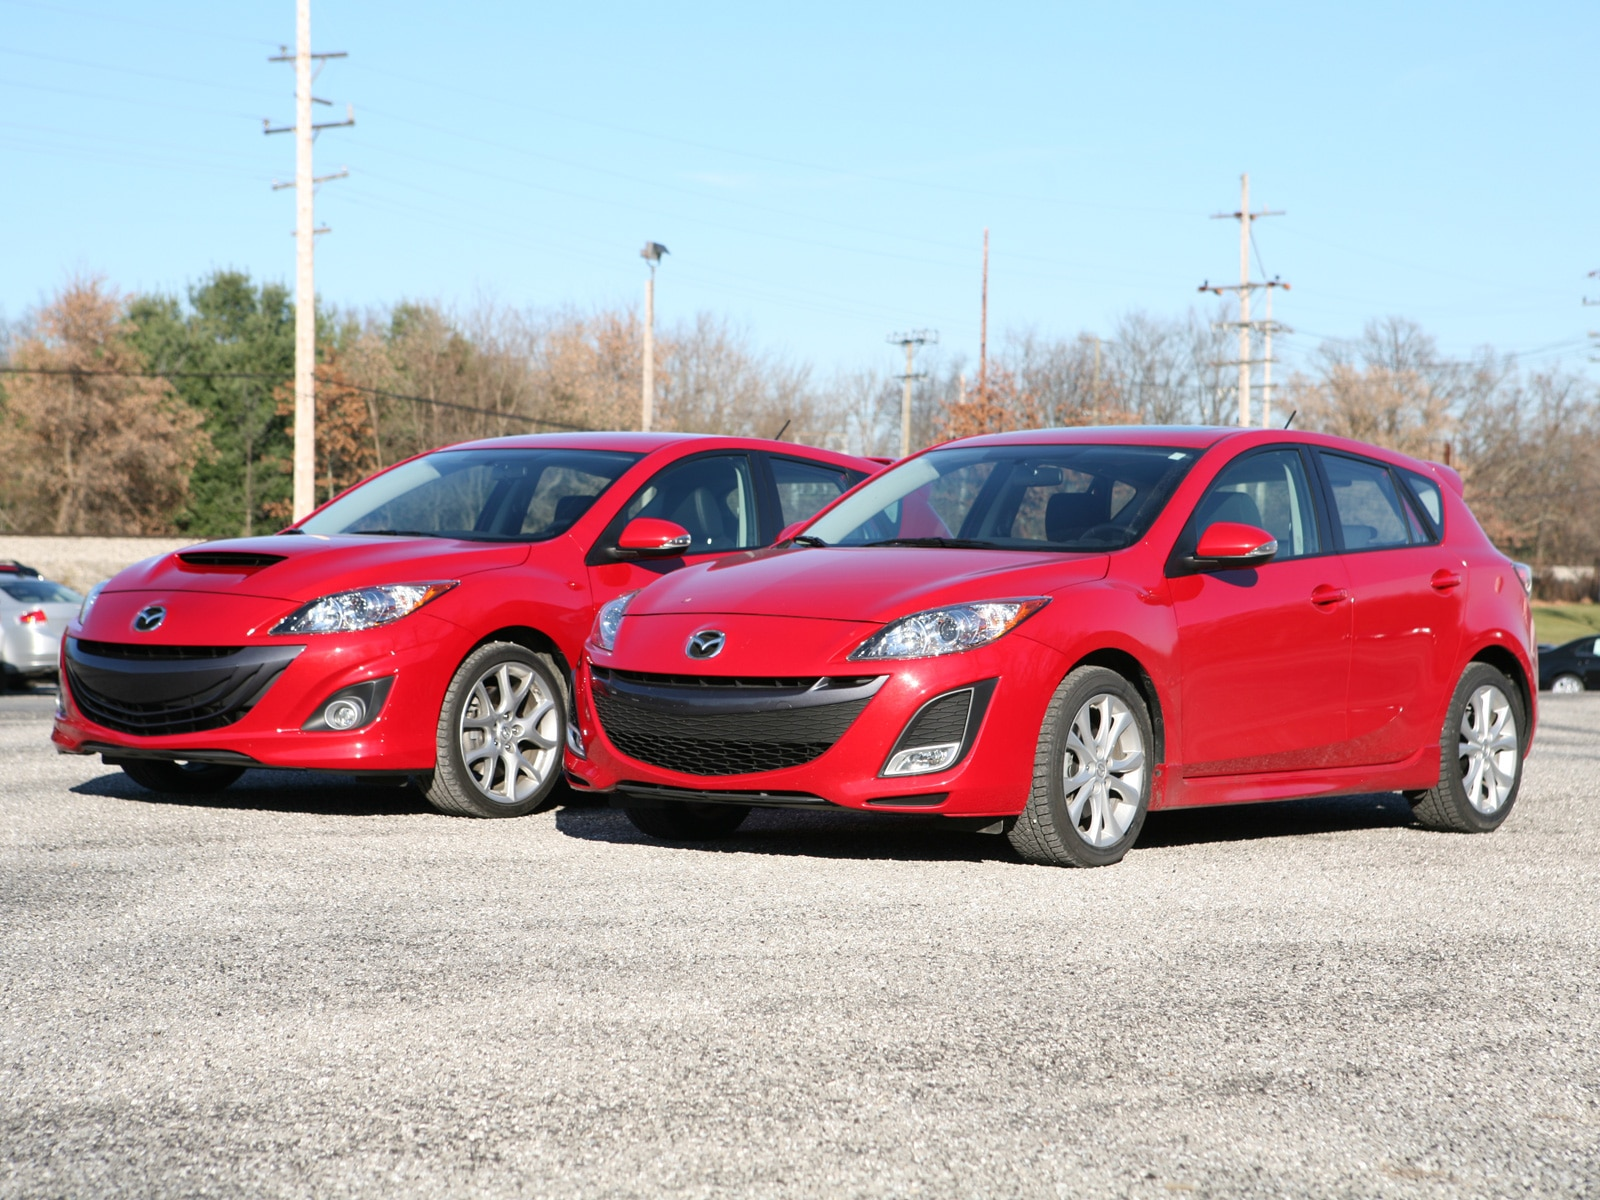 0911 09 Z 2010 Mazda3 VS Mazdaspeed3 Front Three Quarter View